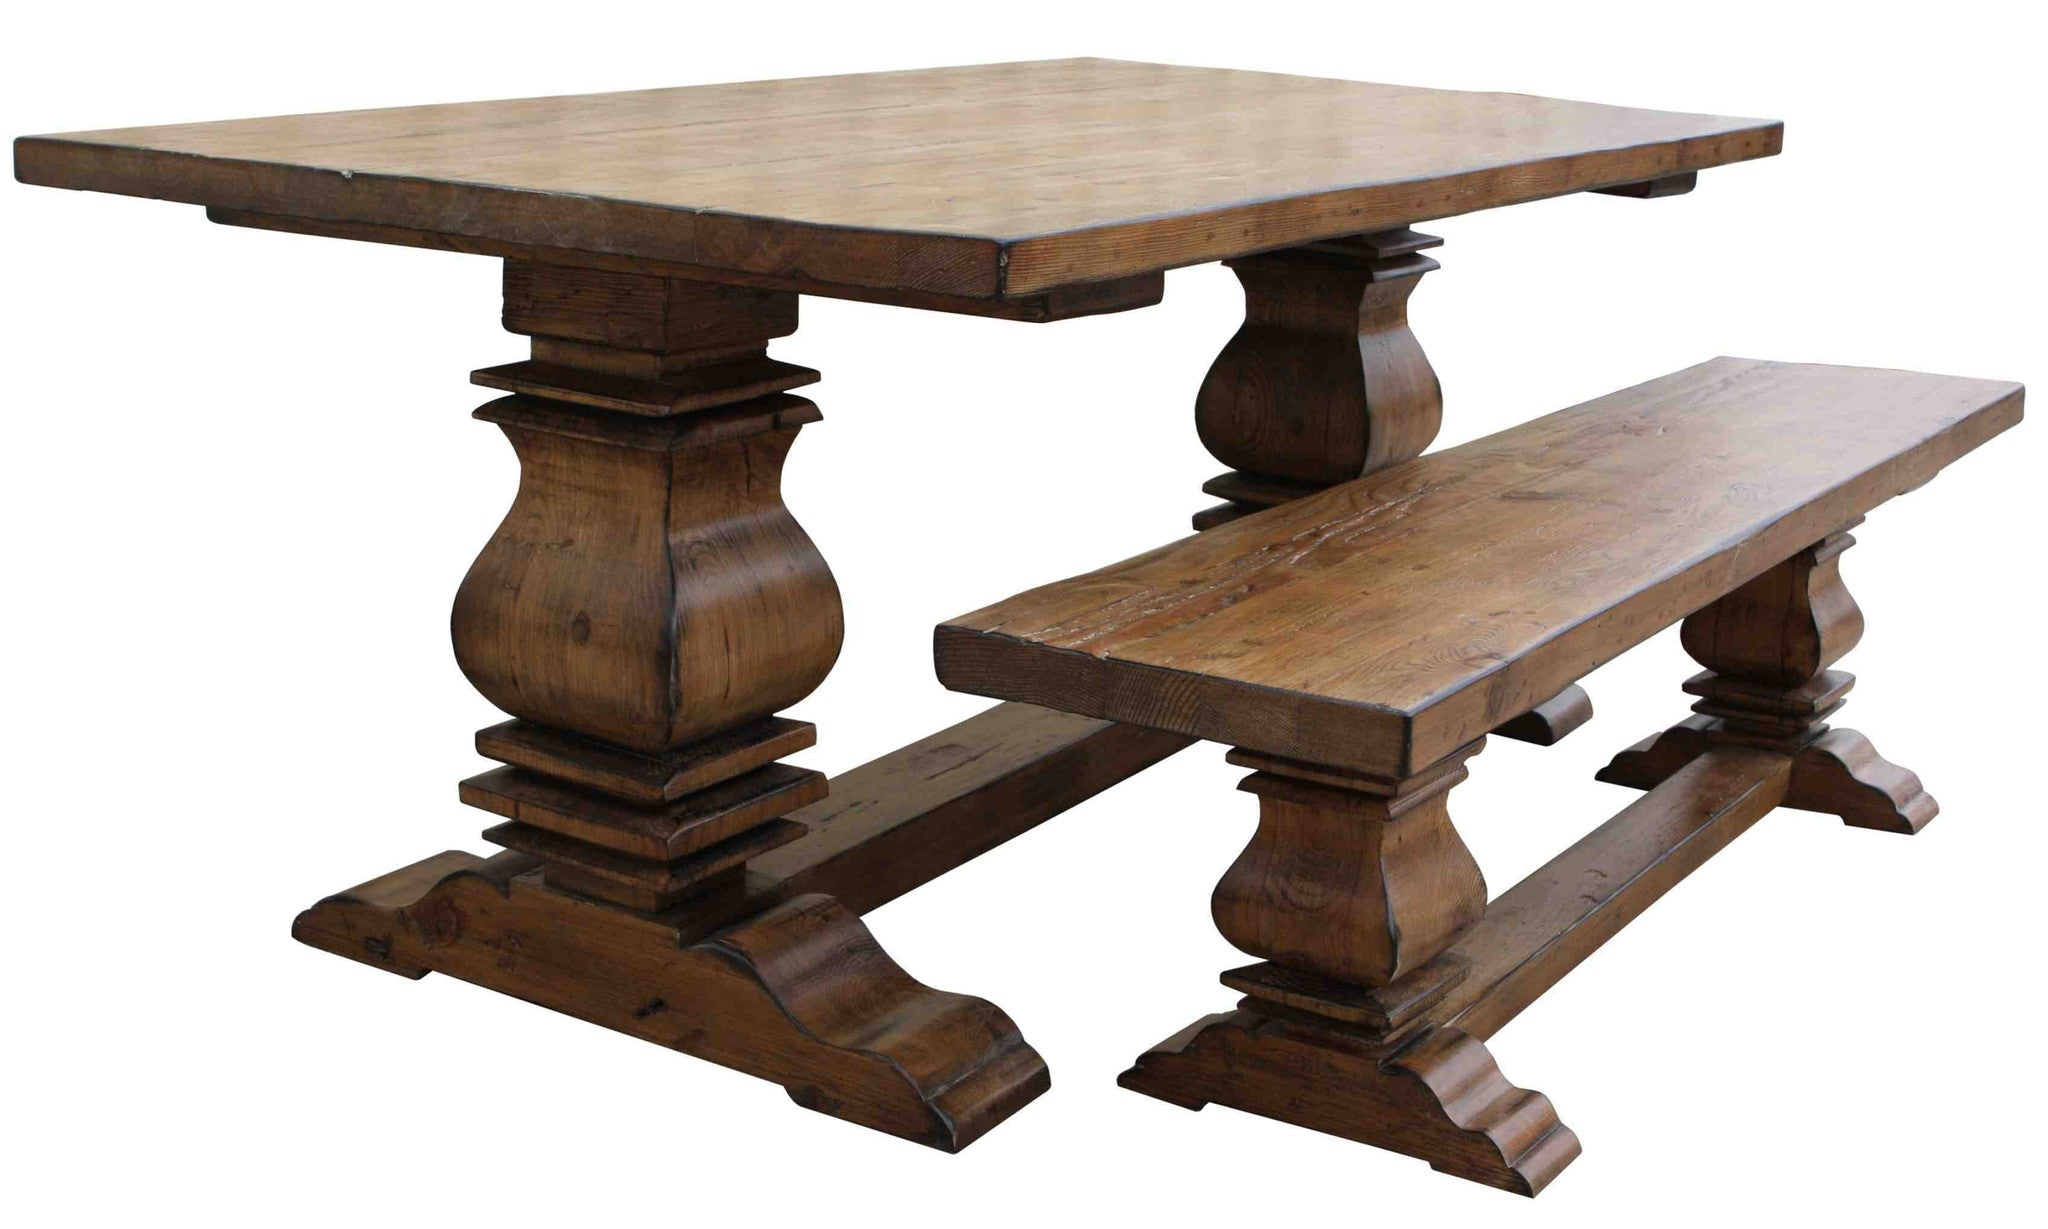 Picture of: Custom Reclaimed Wood Trestle Dining Room Tables Handmade From Salvaged Wood Recycled From Luxury Homes In Los Angeles Mortise Tenon